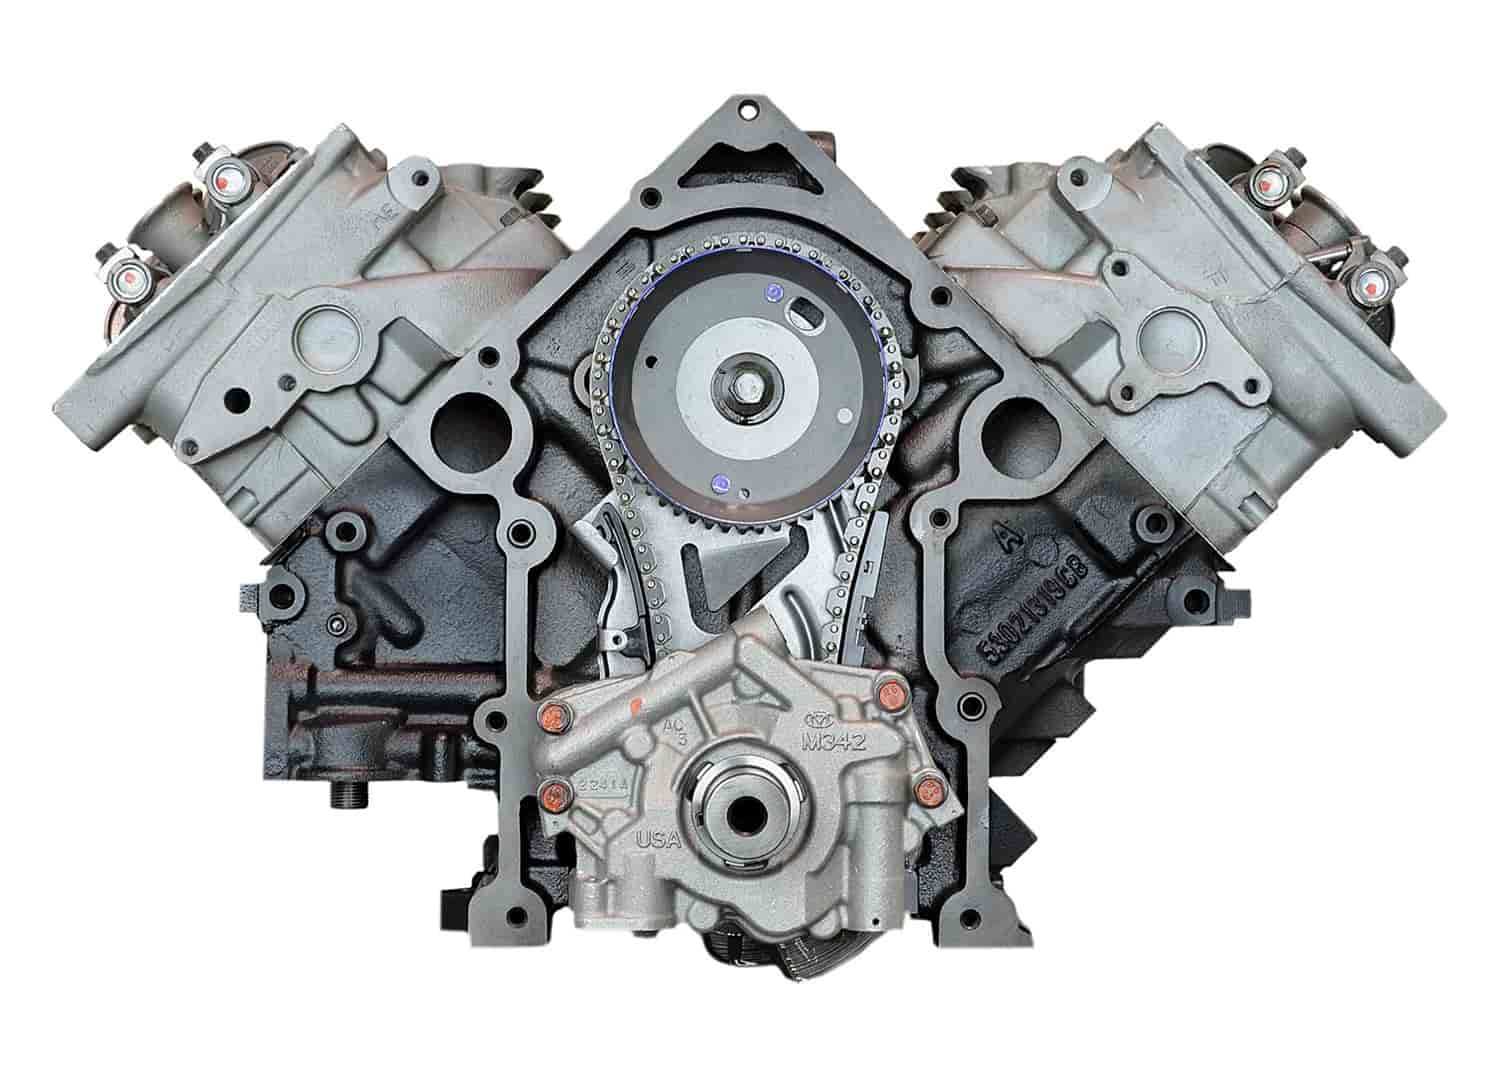 Atk Engines Ddh8 Remanufactured Crate Engine For 2004 2008 Dodge Ram Truck Durango With 5 7l Hemi V8 Jegs